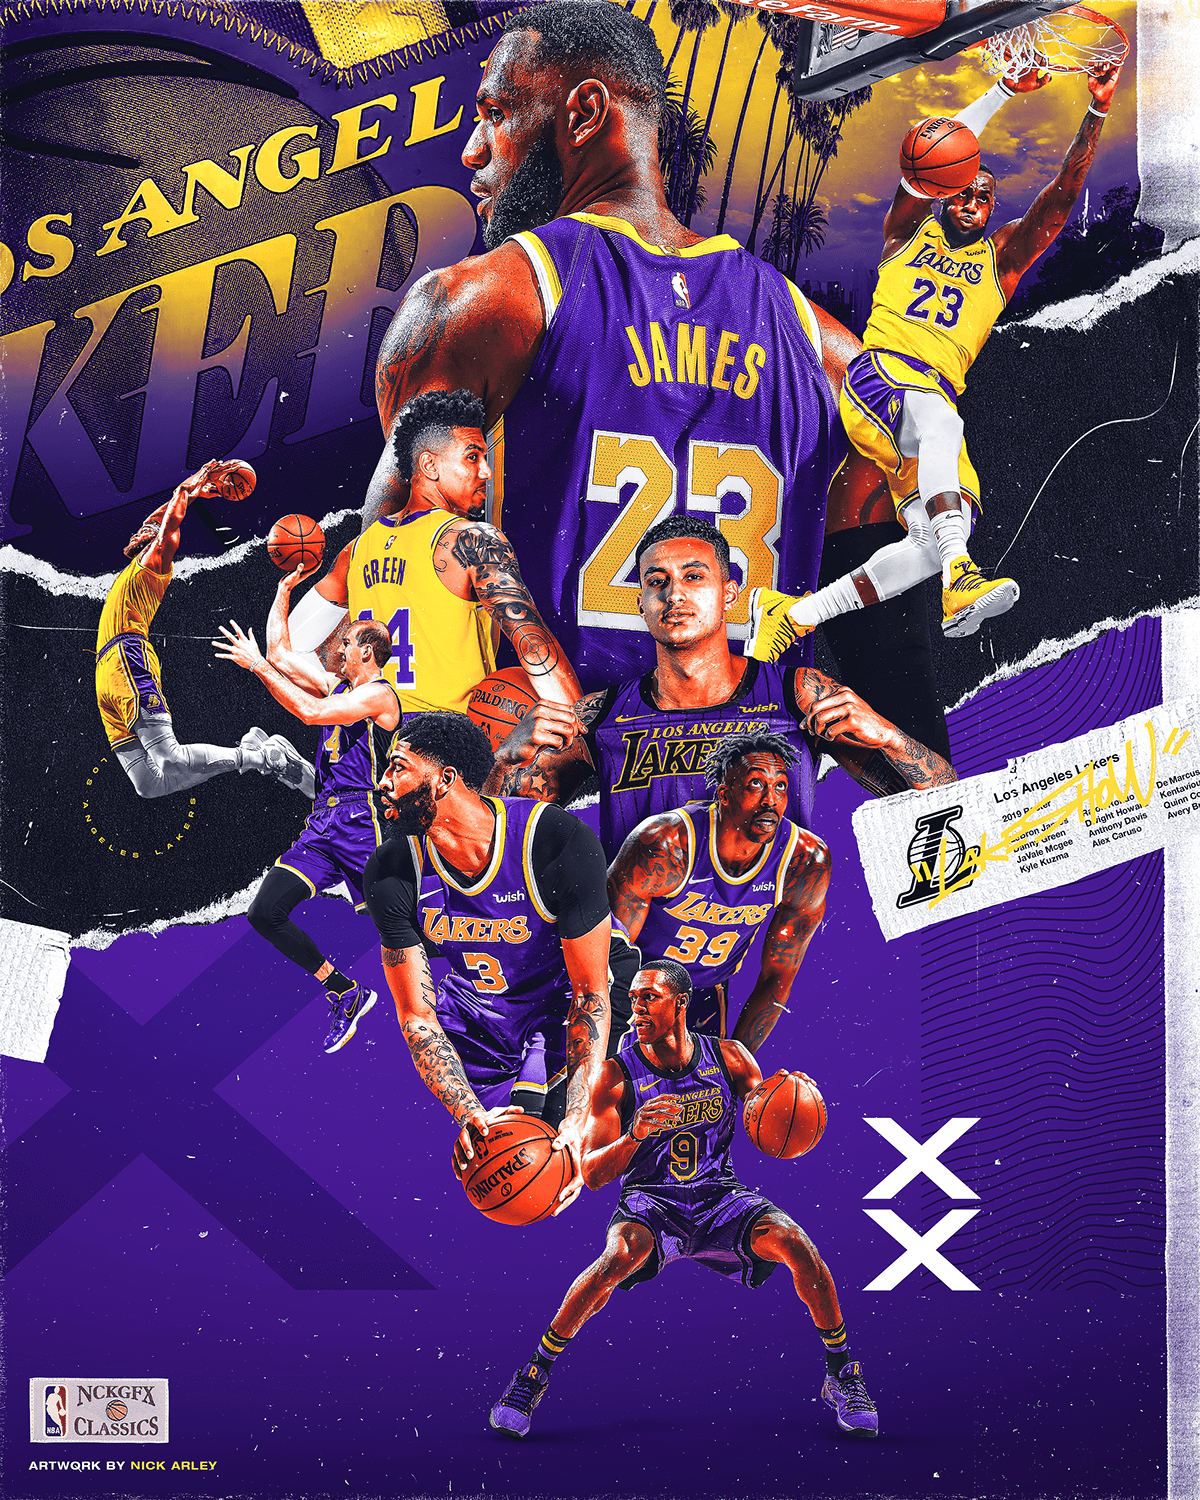 Lakeshow 20192020 on Behance in 2020 Lakers wallpaper